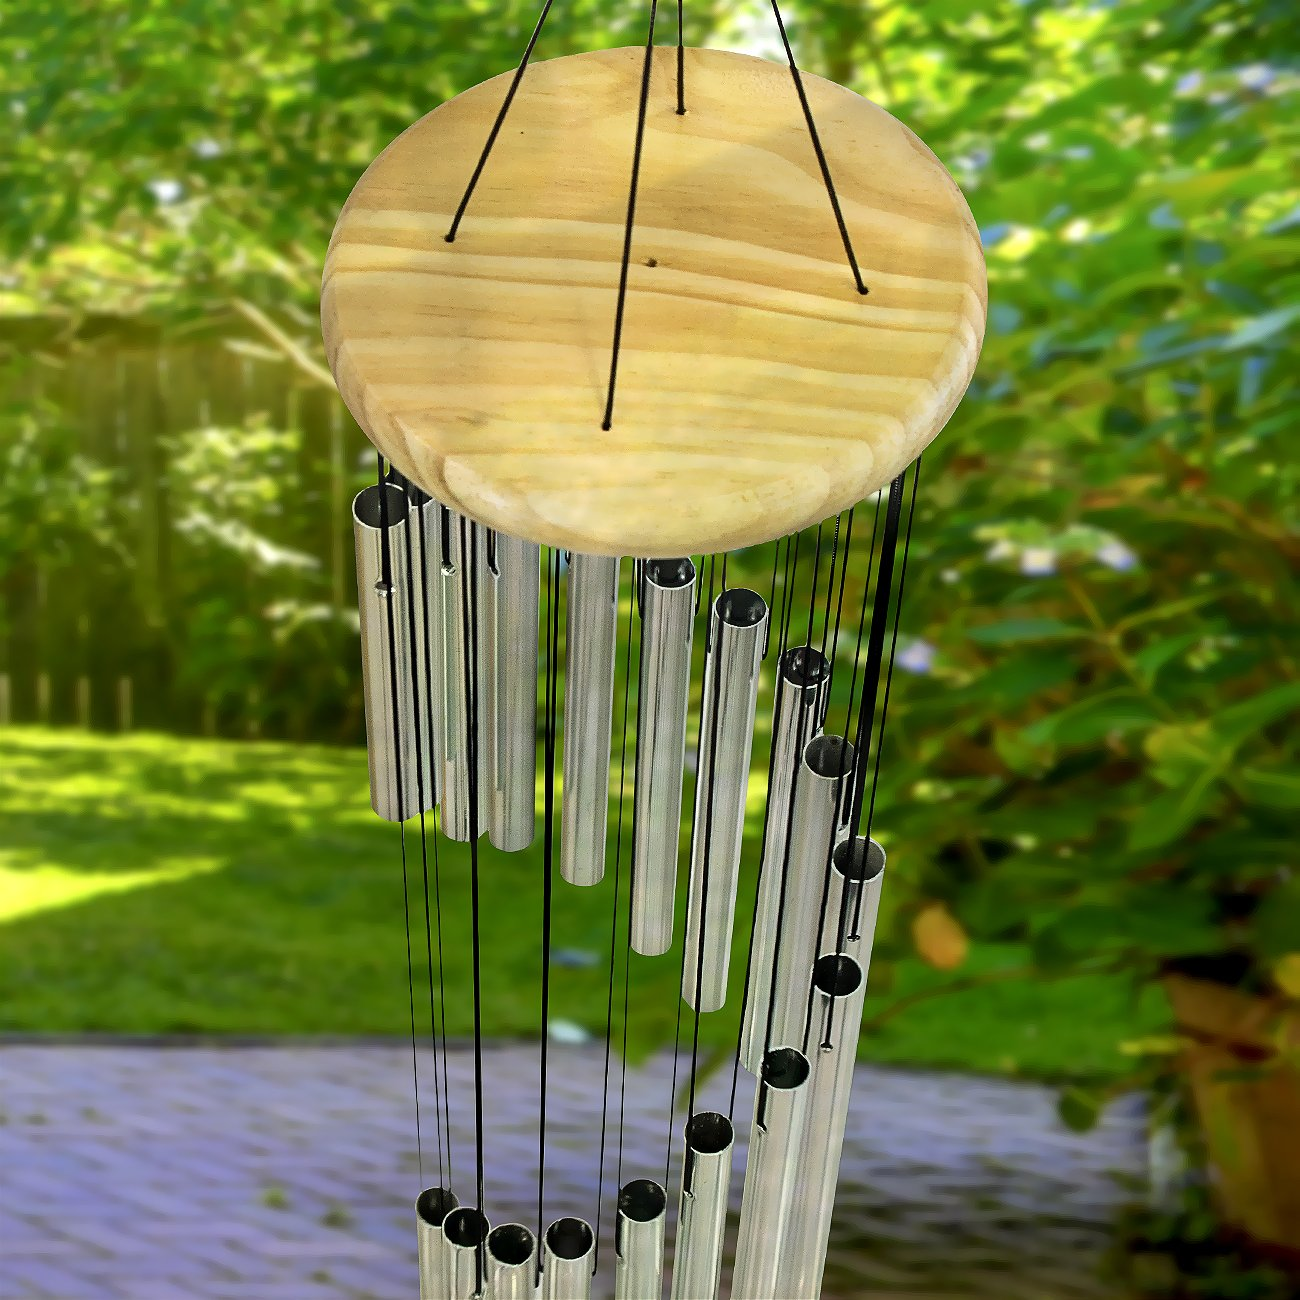 Home Deck Tubular Decorative Outdoor Garden Accent with Soothing Musical Bell Sounds Sorbus Wind Chimes Great for Memorial Metal or Garden Patio